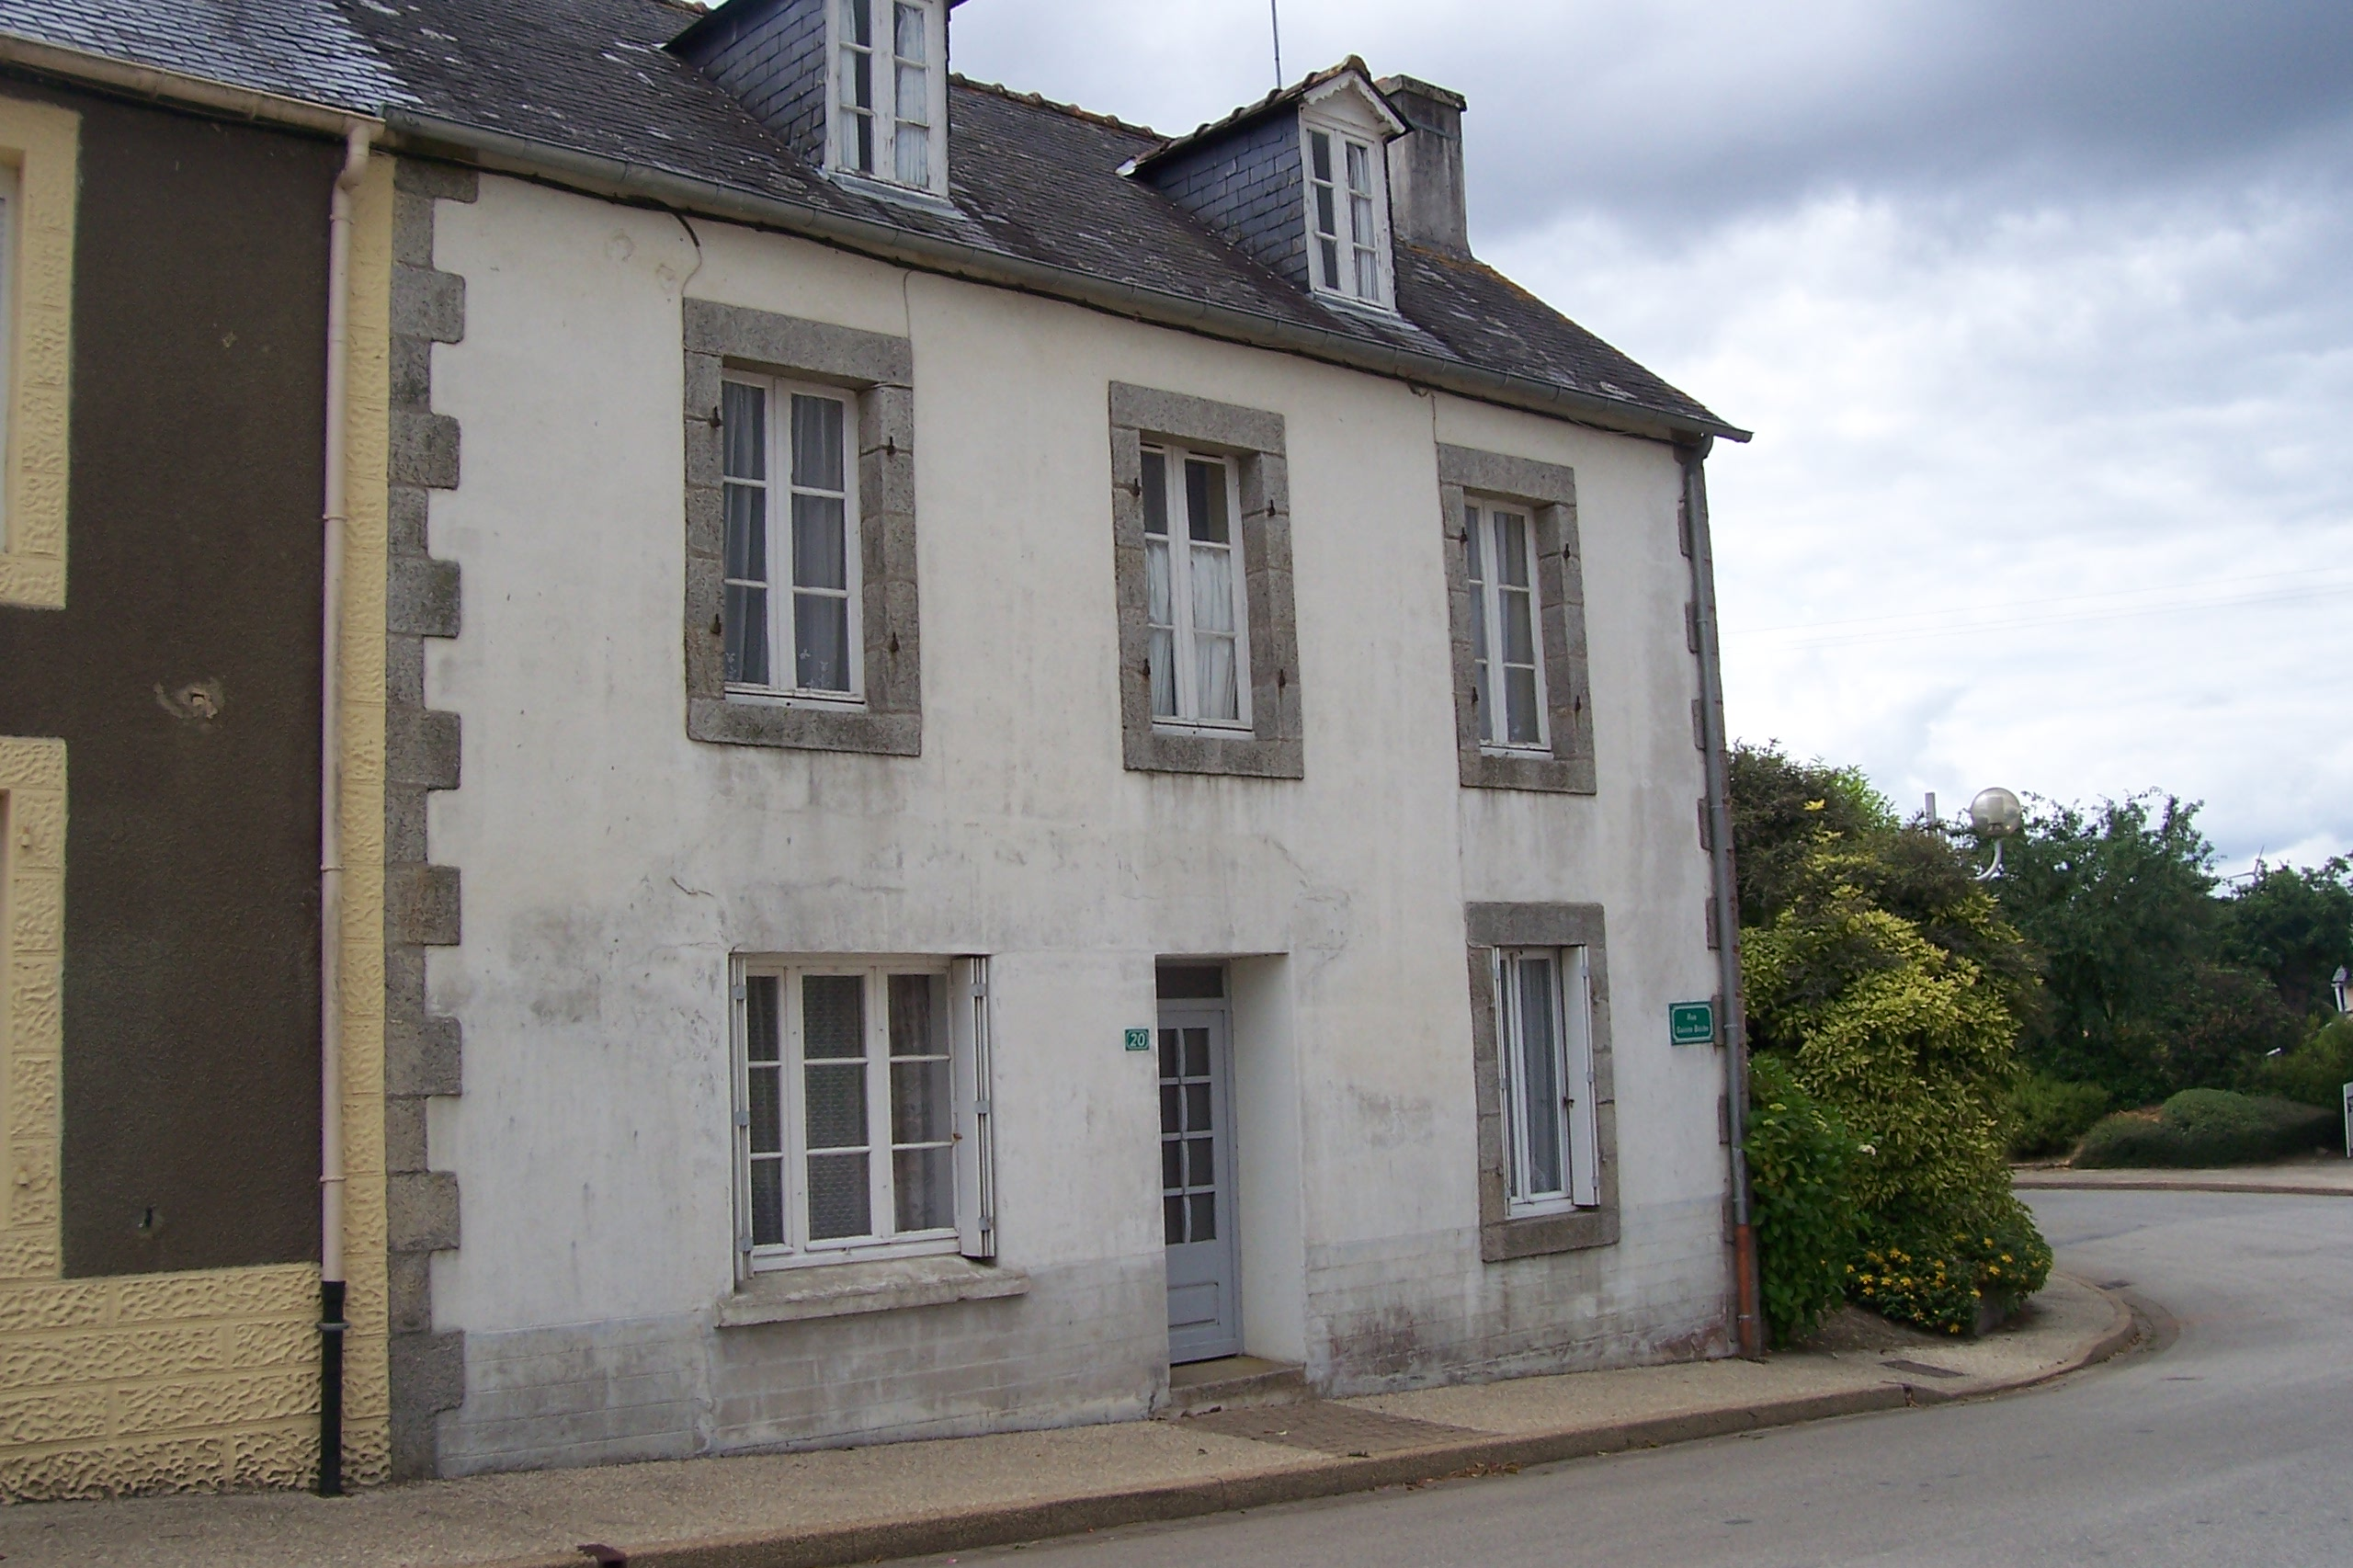 brittany-property-for-sale-M775-2914208-01